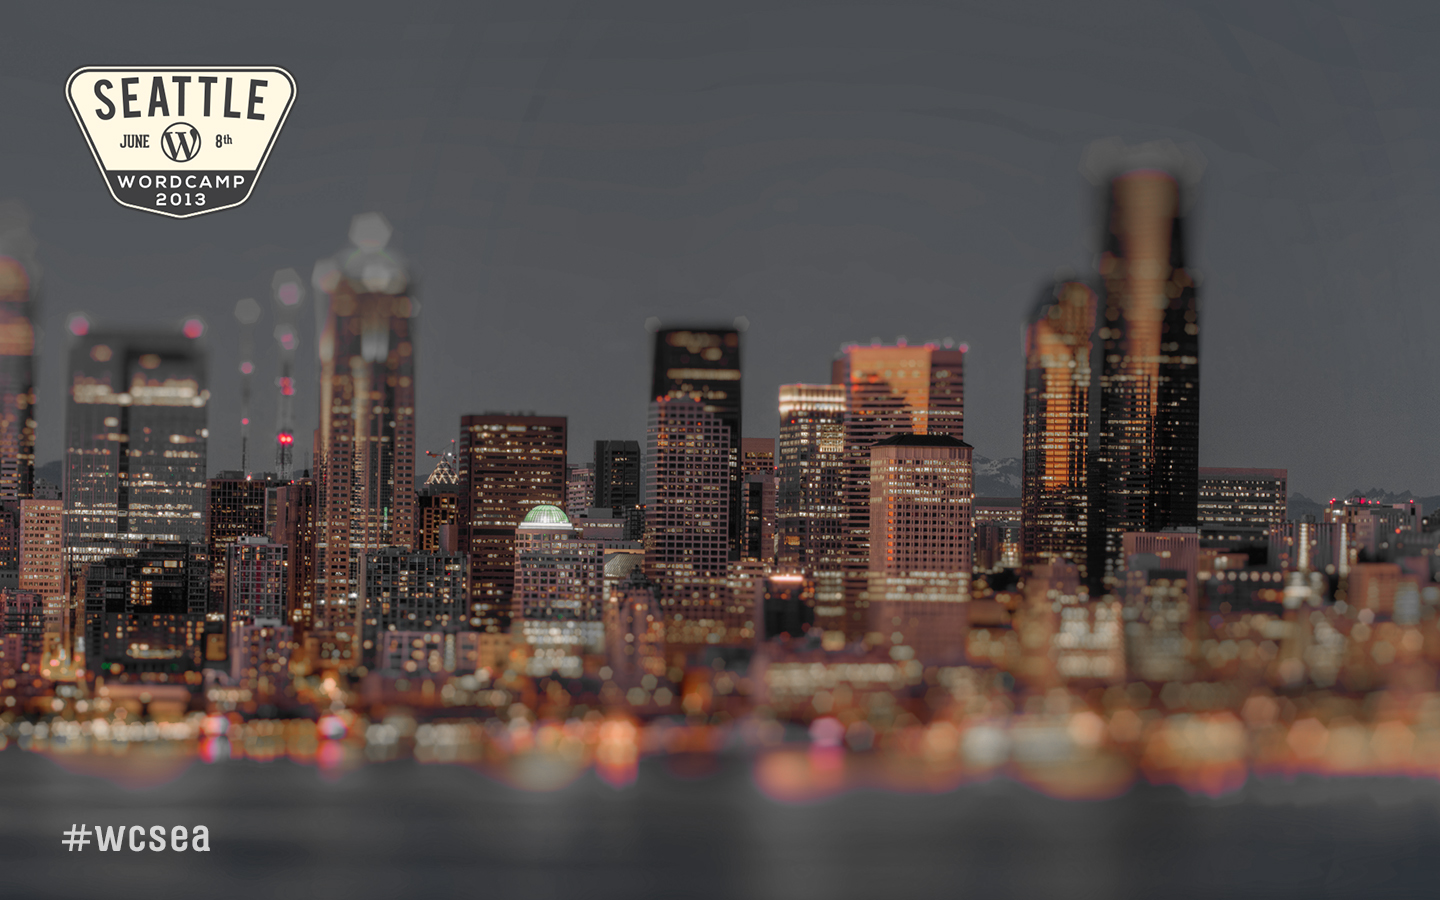 WordCamp-Seattle-WallPaper-1440x900